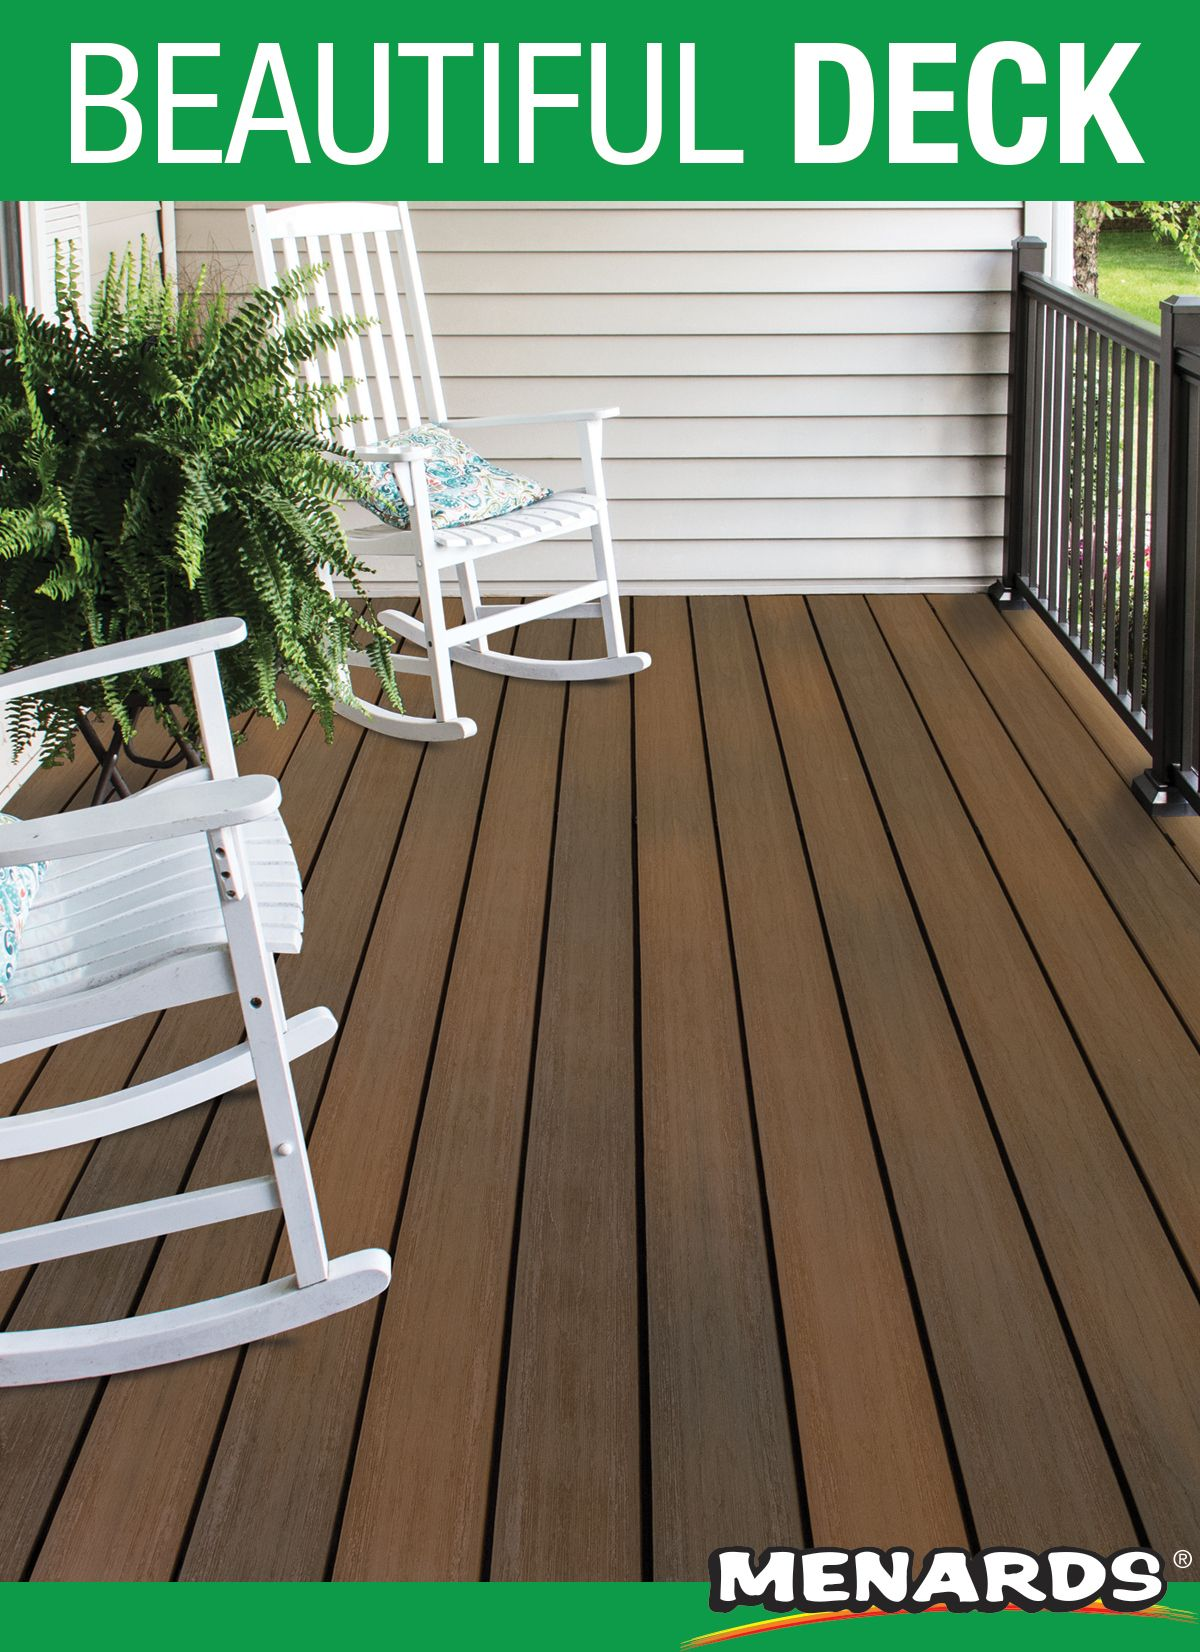 8 Ultradeck Inspire Low Maintenance Composite Decking In 2020 Deck Patio Steps Composite Decking